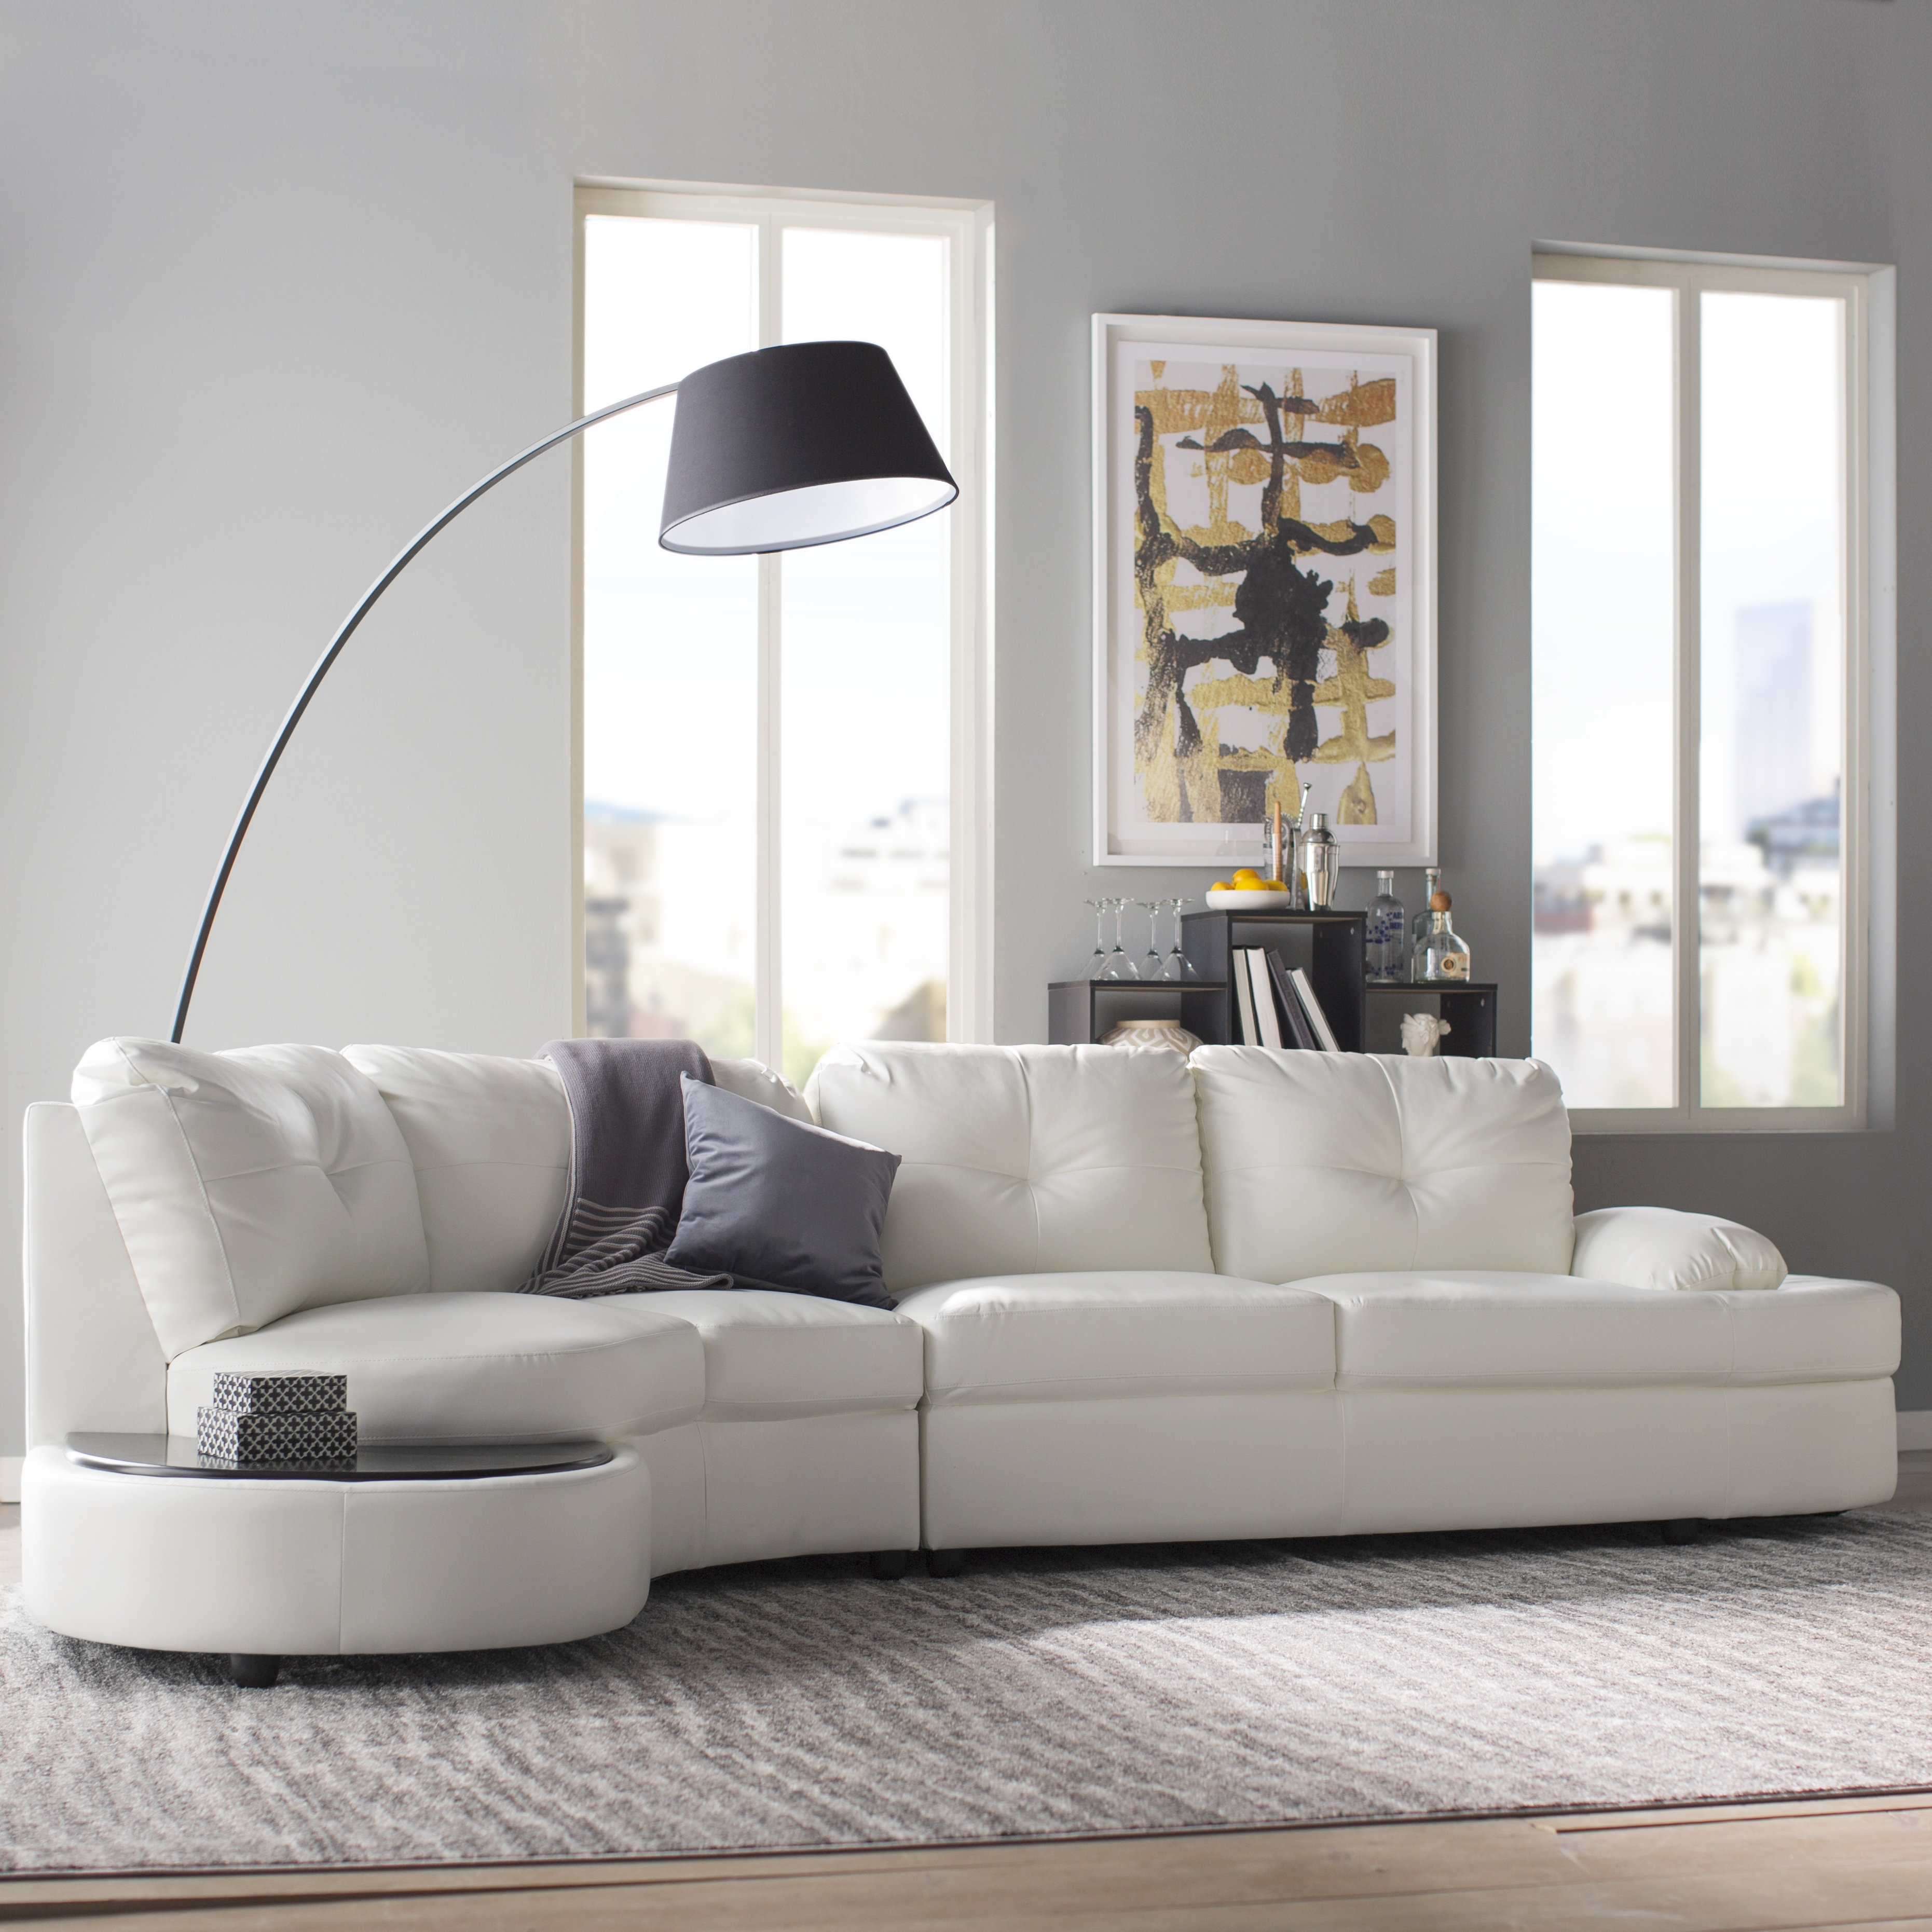 Wade Logan Bireuen Sectional & Reviews | Wayfair throughout Declan 3 Piece Power Reclining Sectionals With Left Facing Console Loveseat (Image 30 of 30)